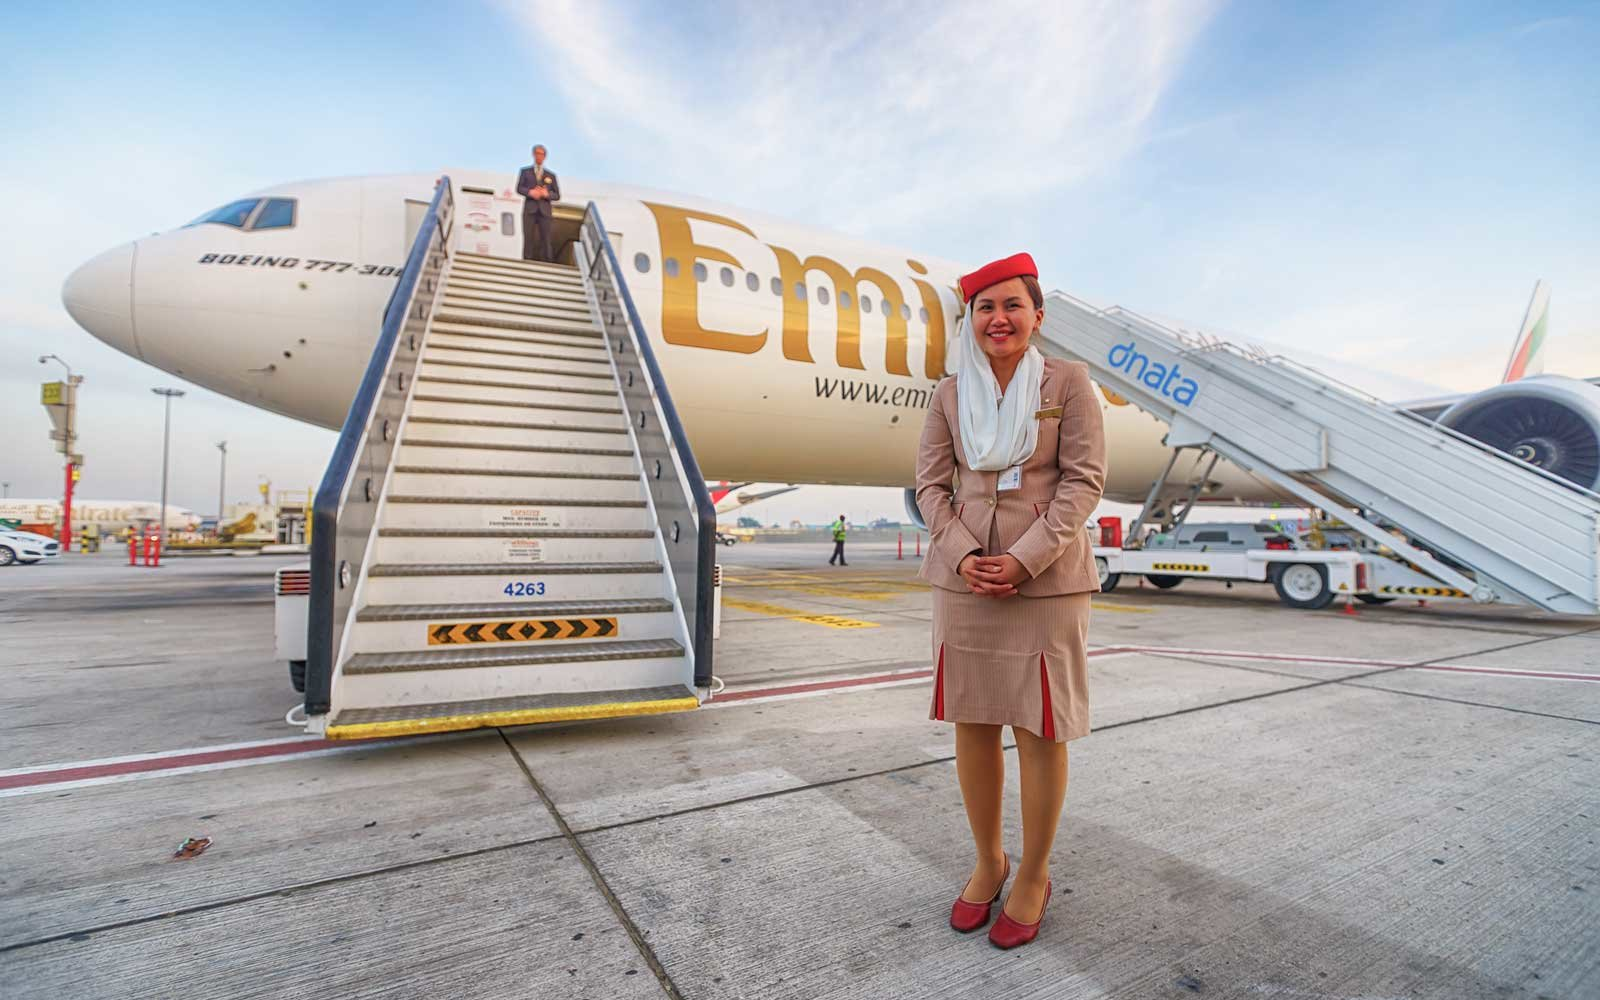 7 stress-free holiday travel tips from an Emirates flight attendant